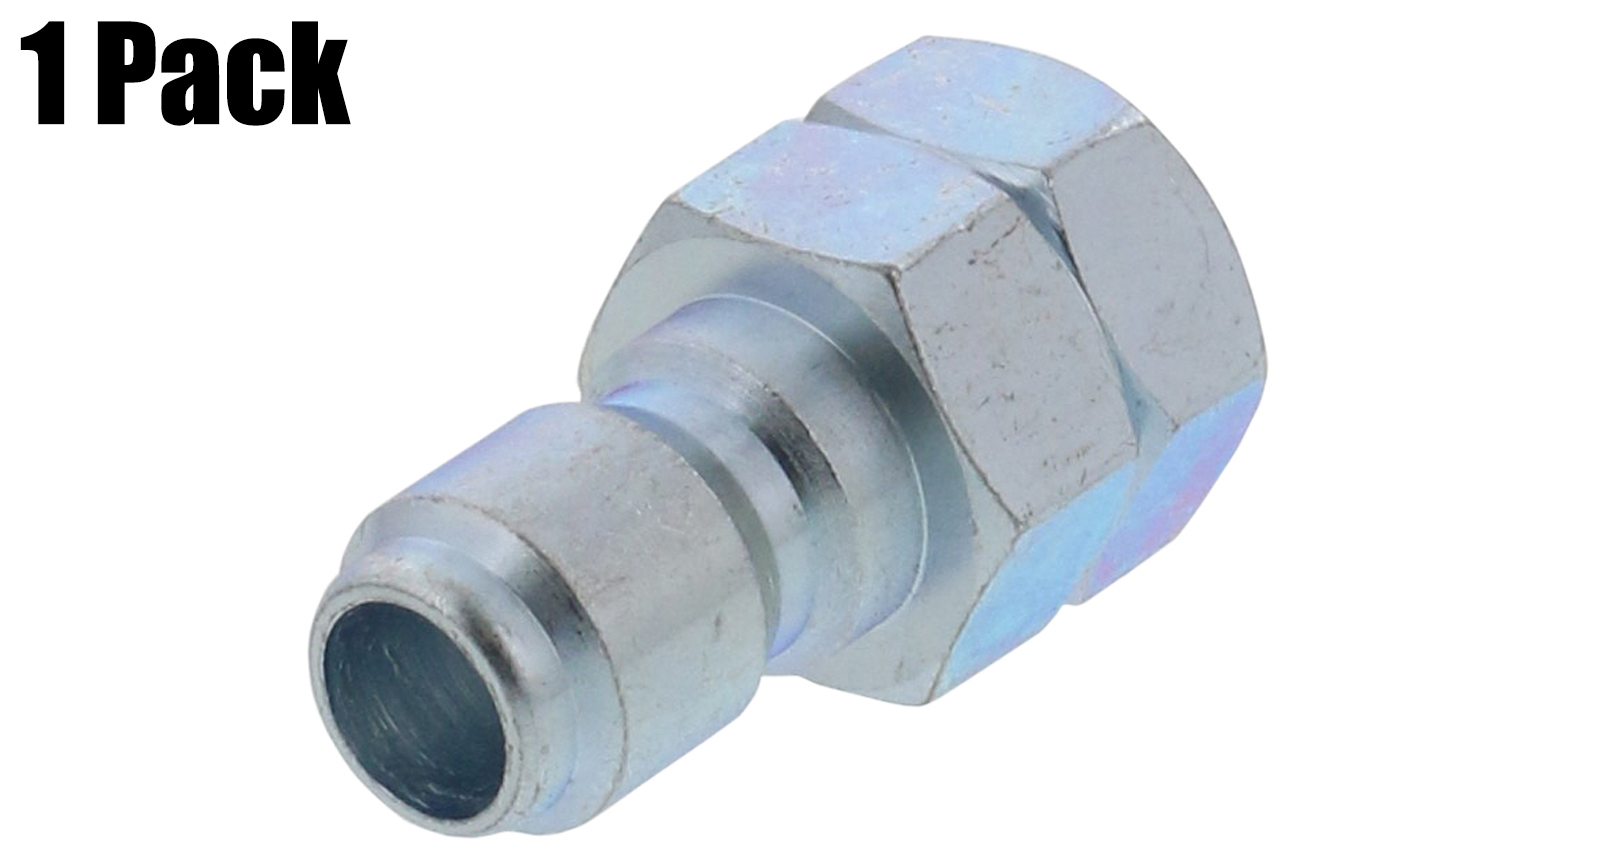 """General Pump Pressure Washer 3 8"""" Female NPT-F Quick Connect Plug 4000 PSI by General Pump"""